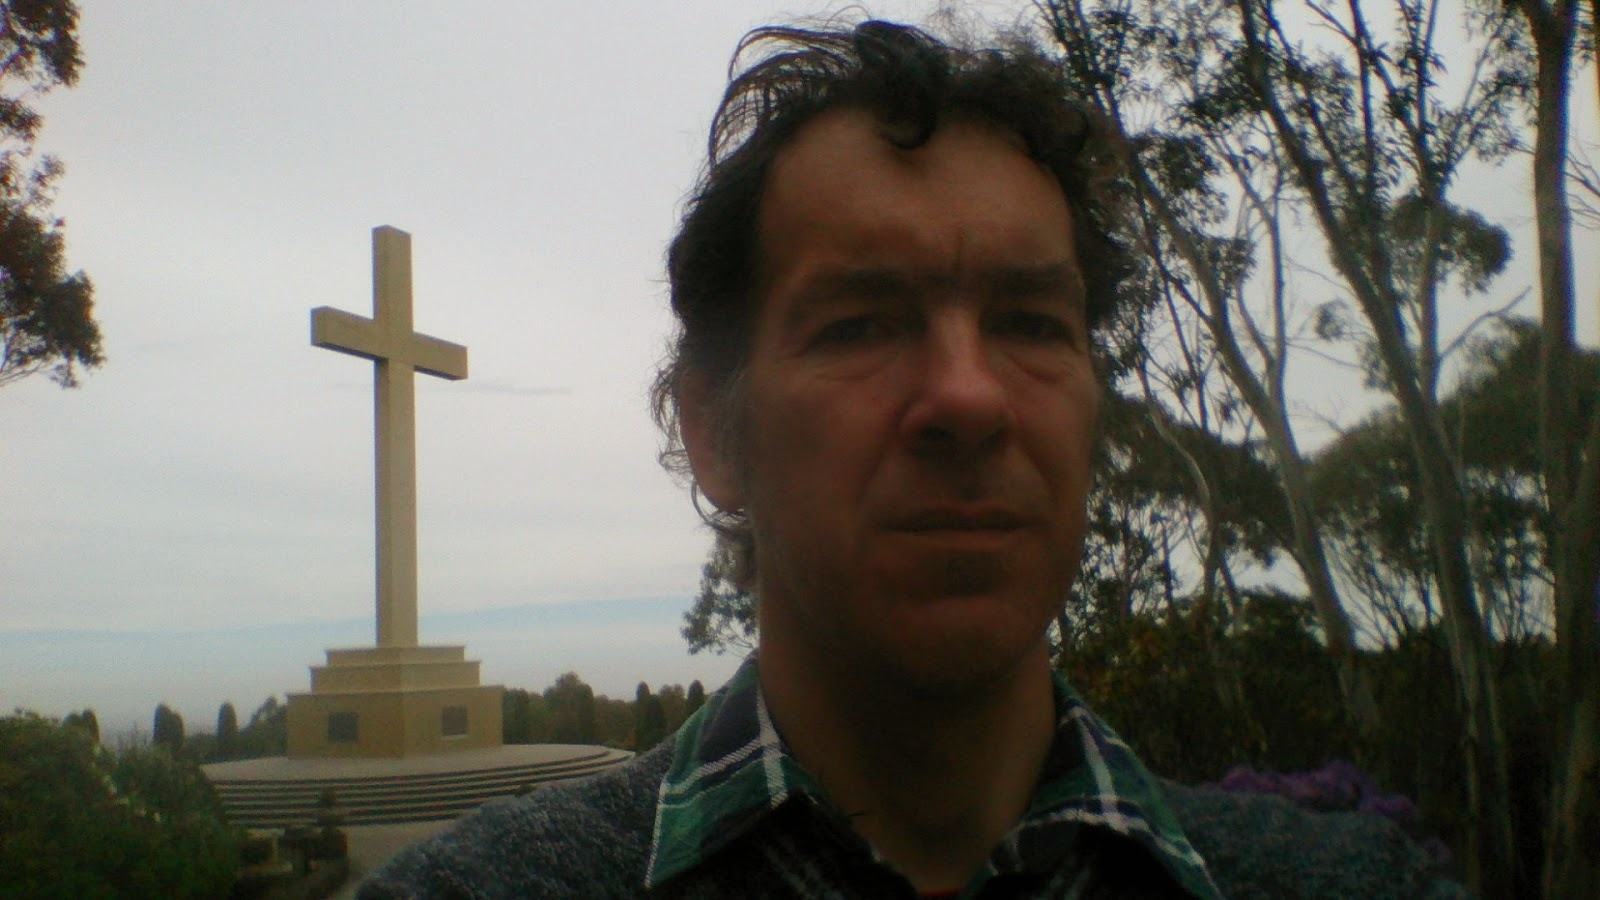 Macedon Memorial Cross Selfie